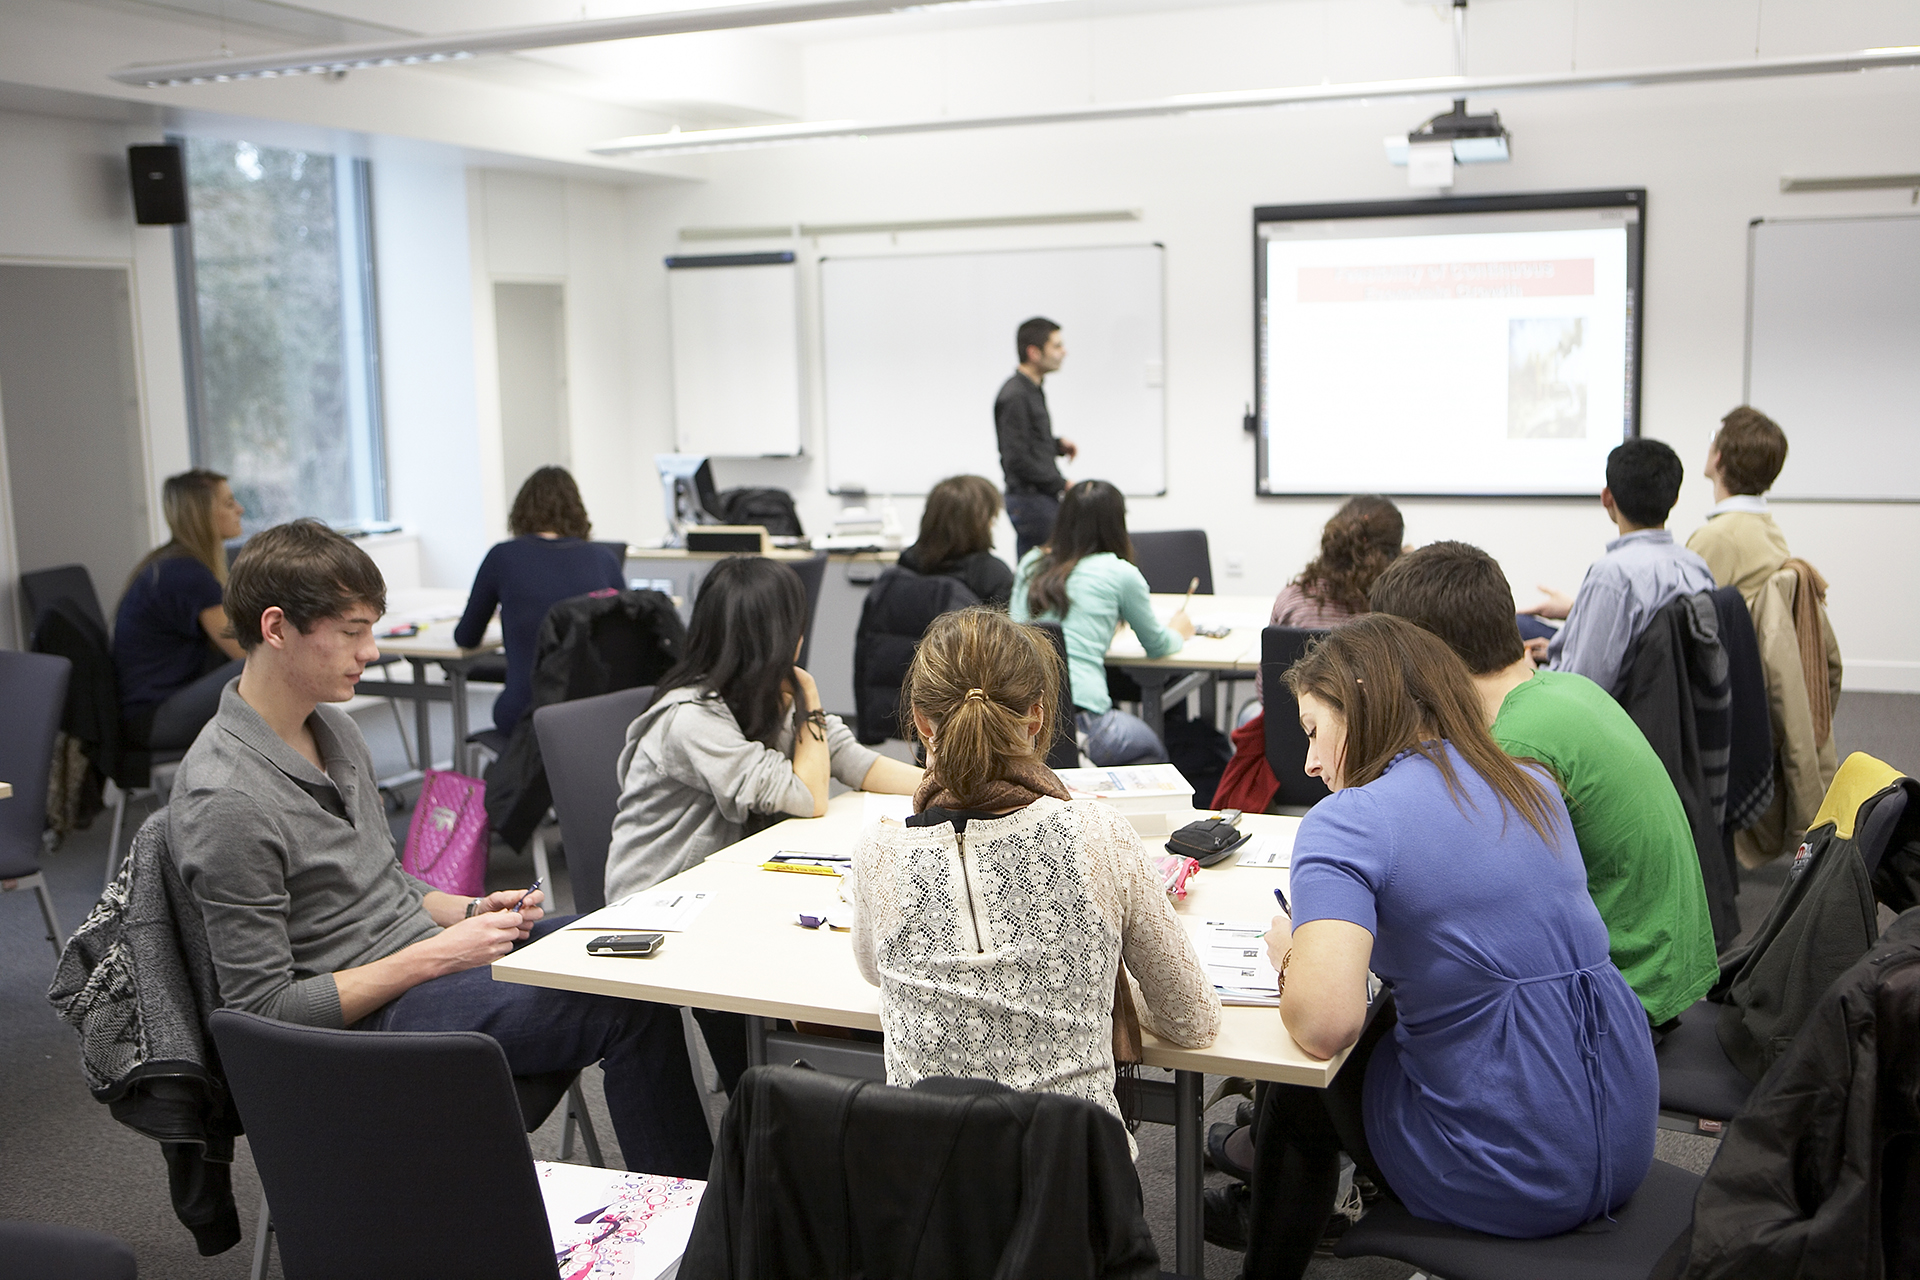 INTO international students in a classroom